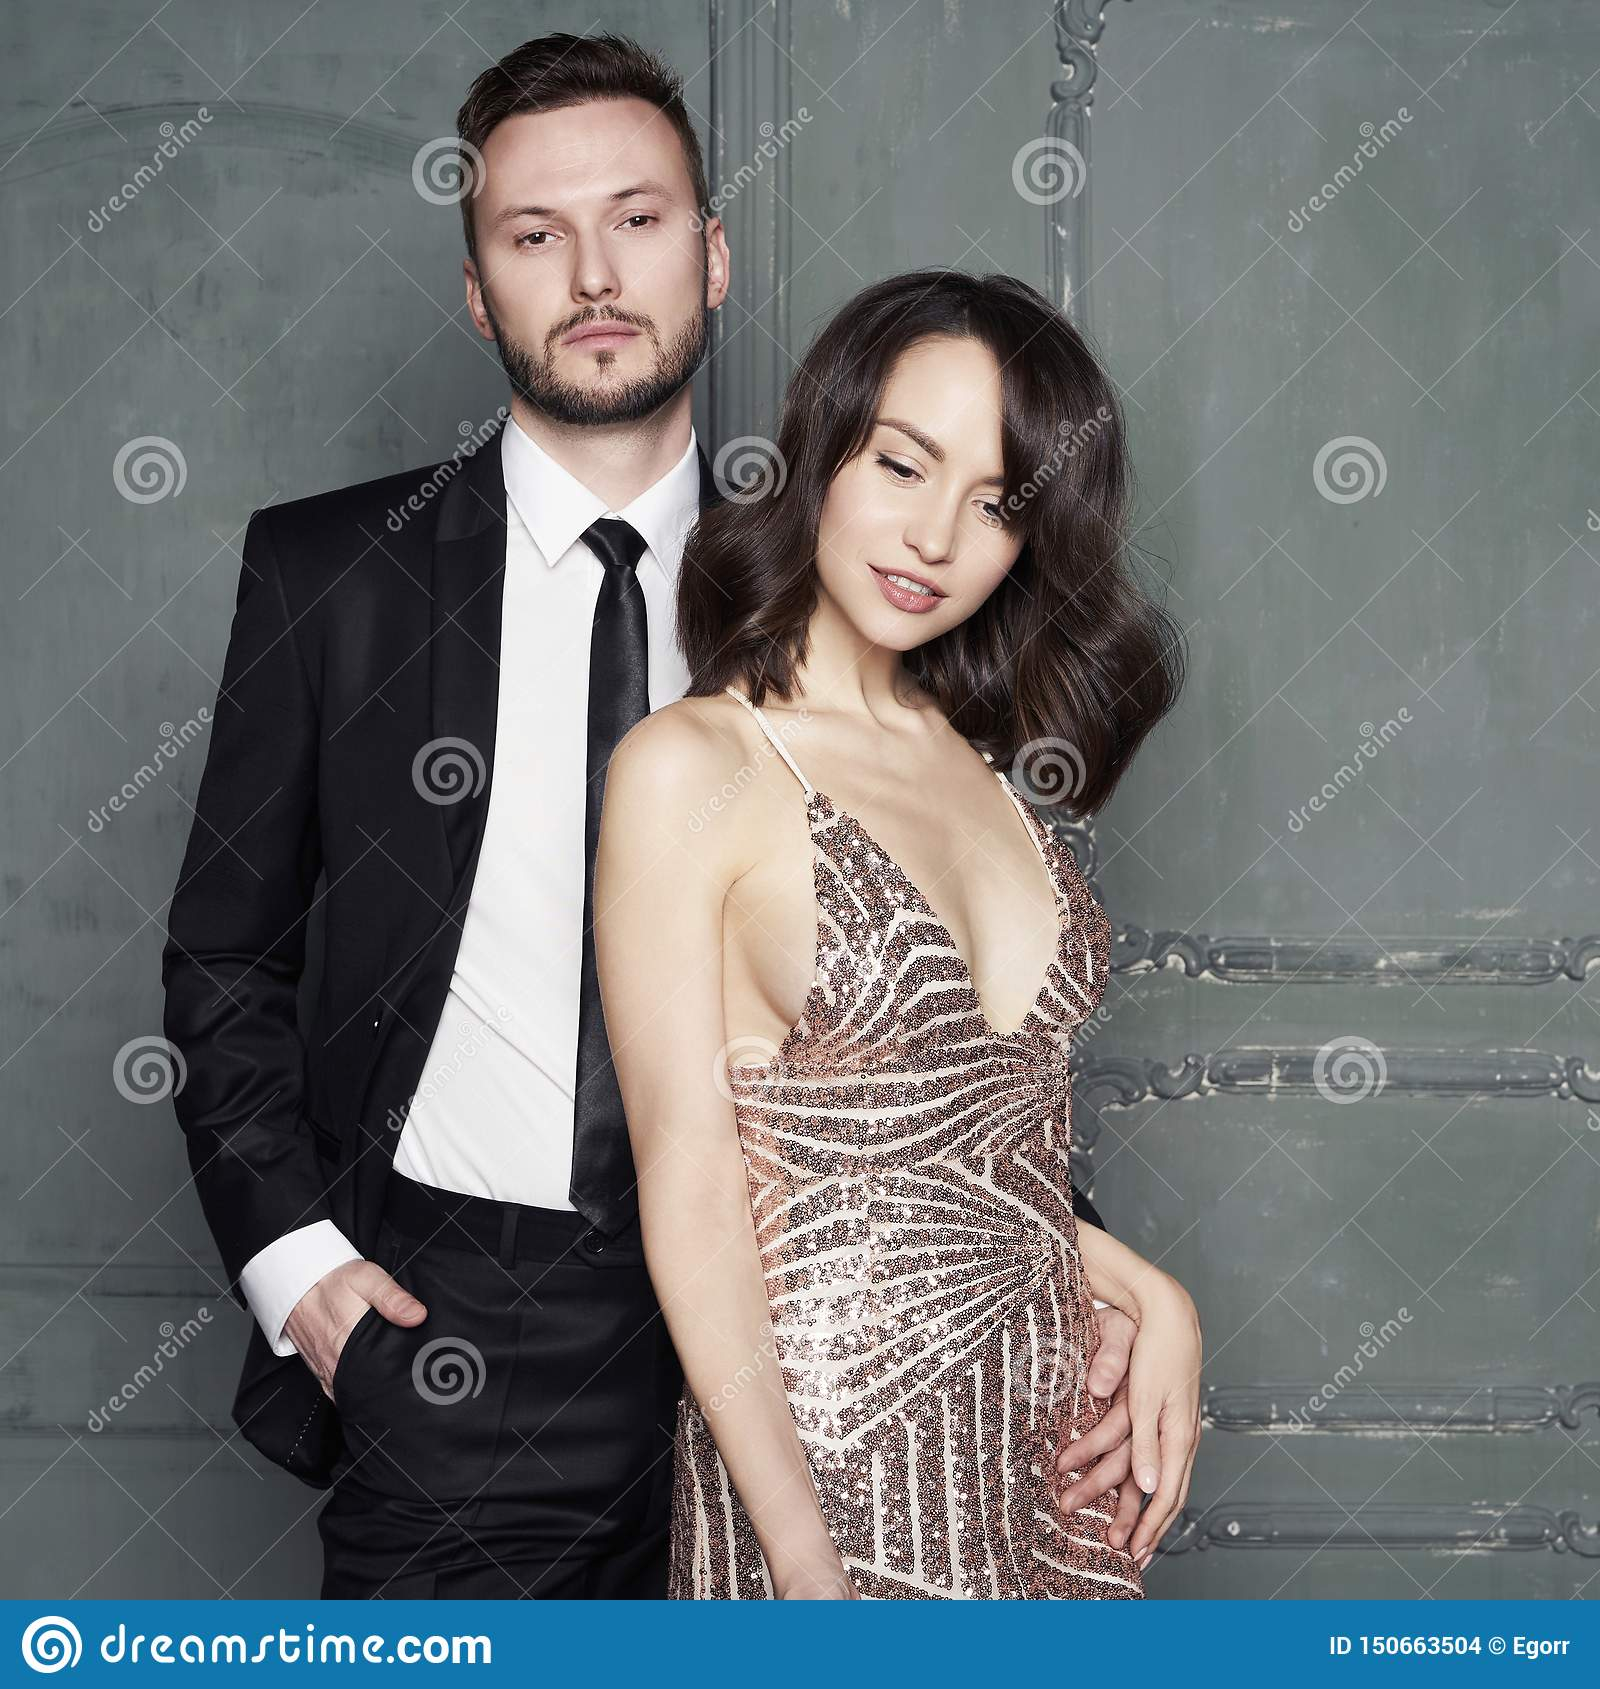 Glamour portrait of young lovers. Fashionable elegant man and woman